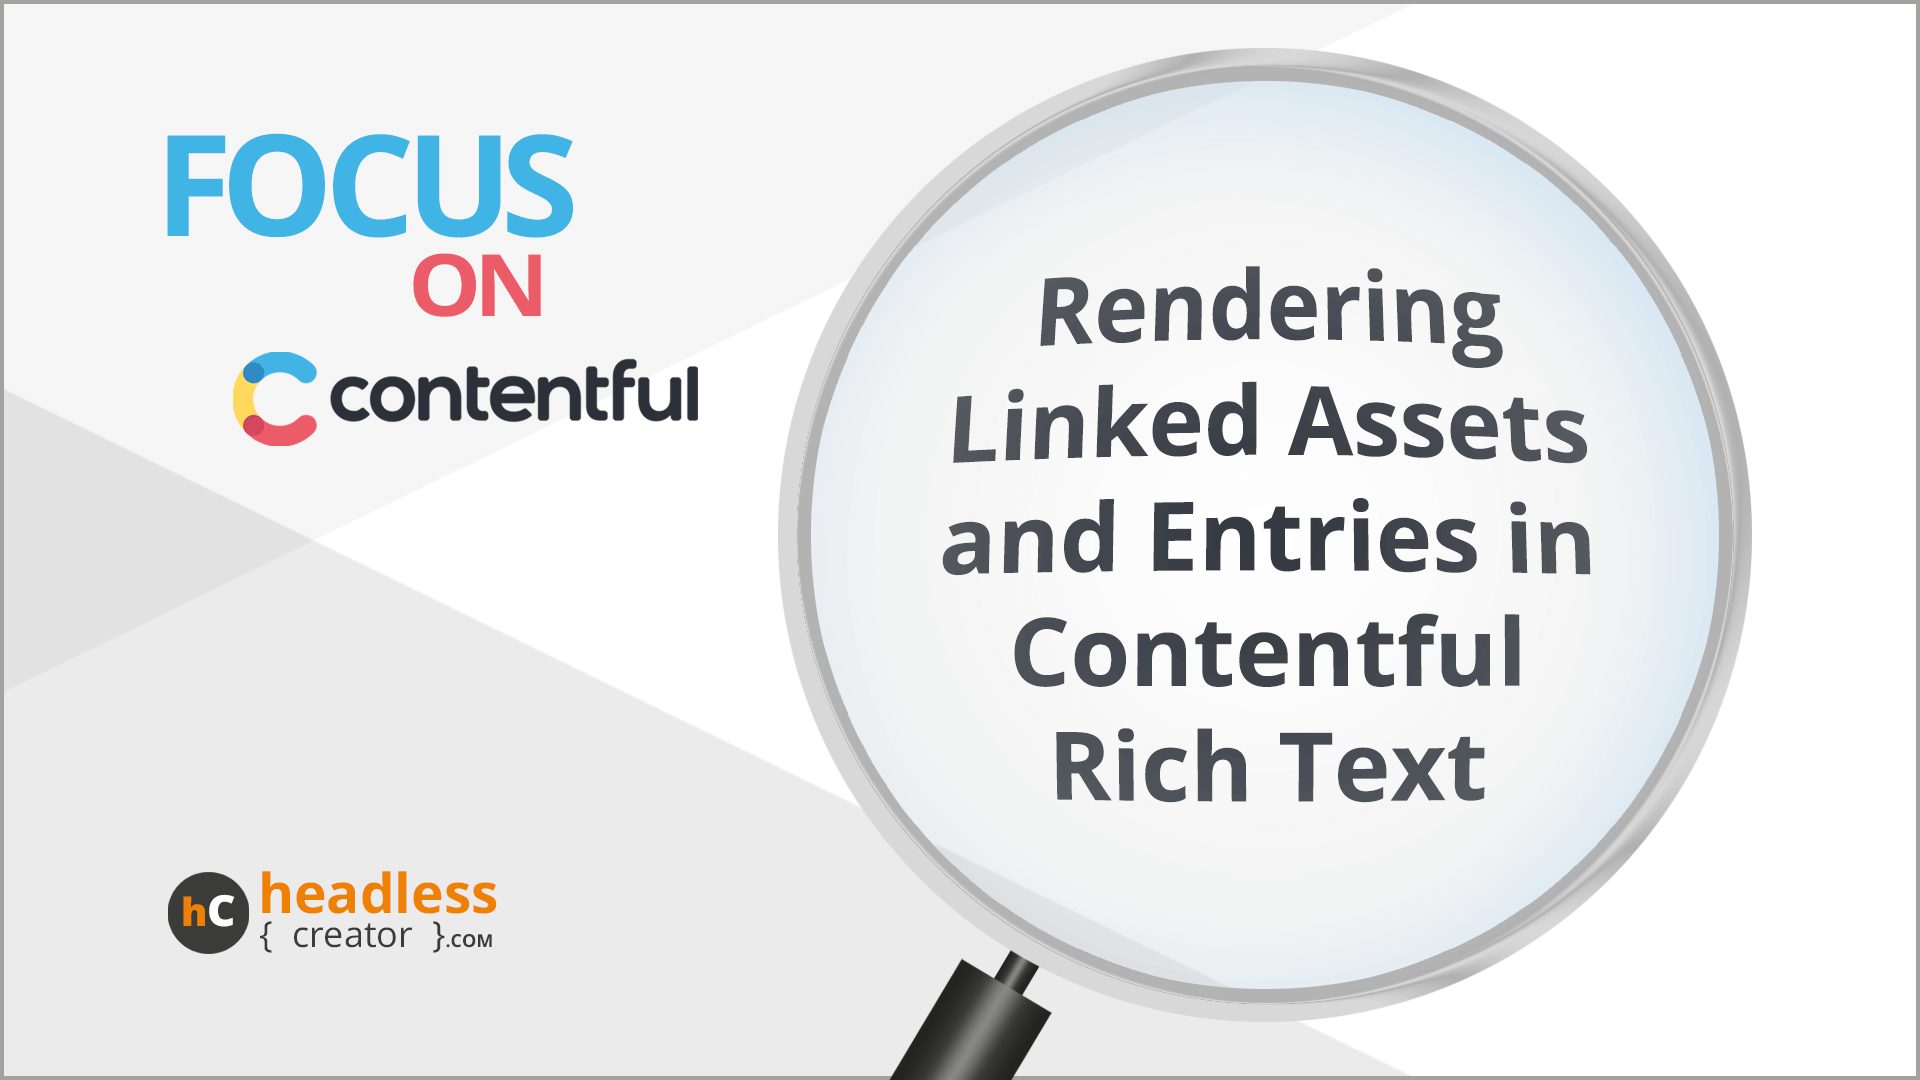 """An illustration of a magnifying class over the text """"Rendering Linked Assets and Entries in Contentful Rich Text"""". At the top left there is the text """"Focus on"""" and the Contentful logo. At the bottom left there is the headless creator logo."""